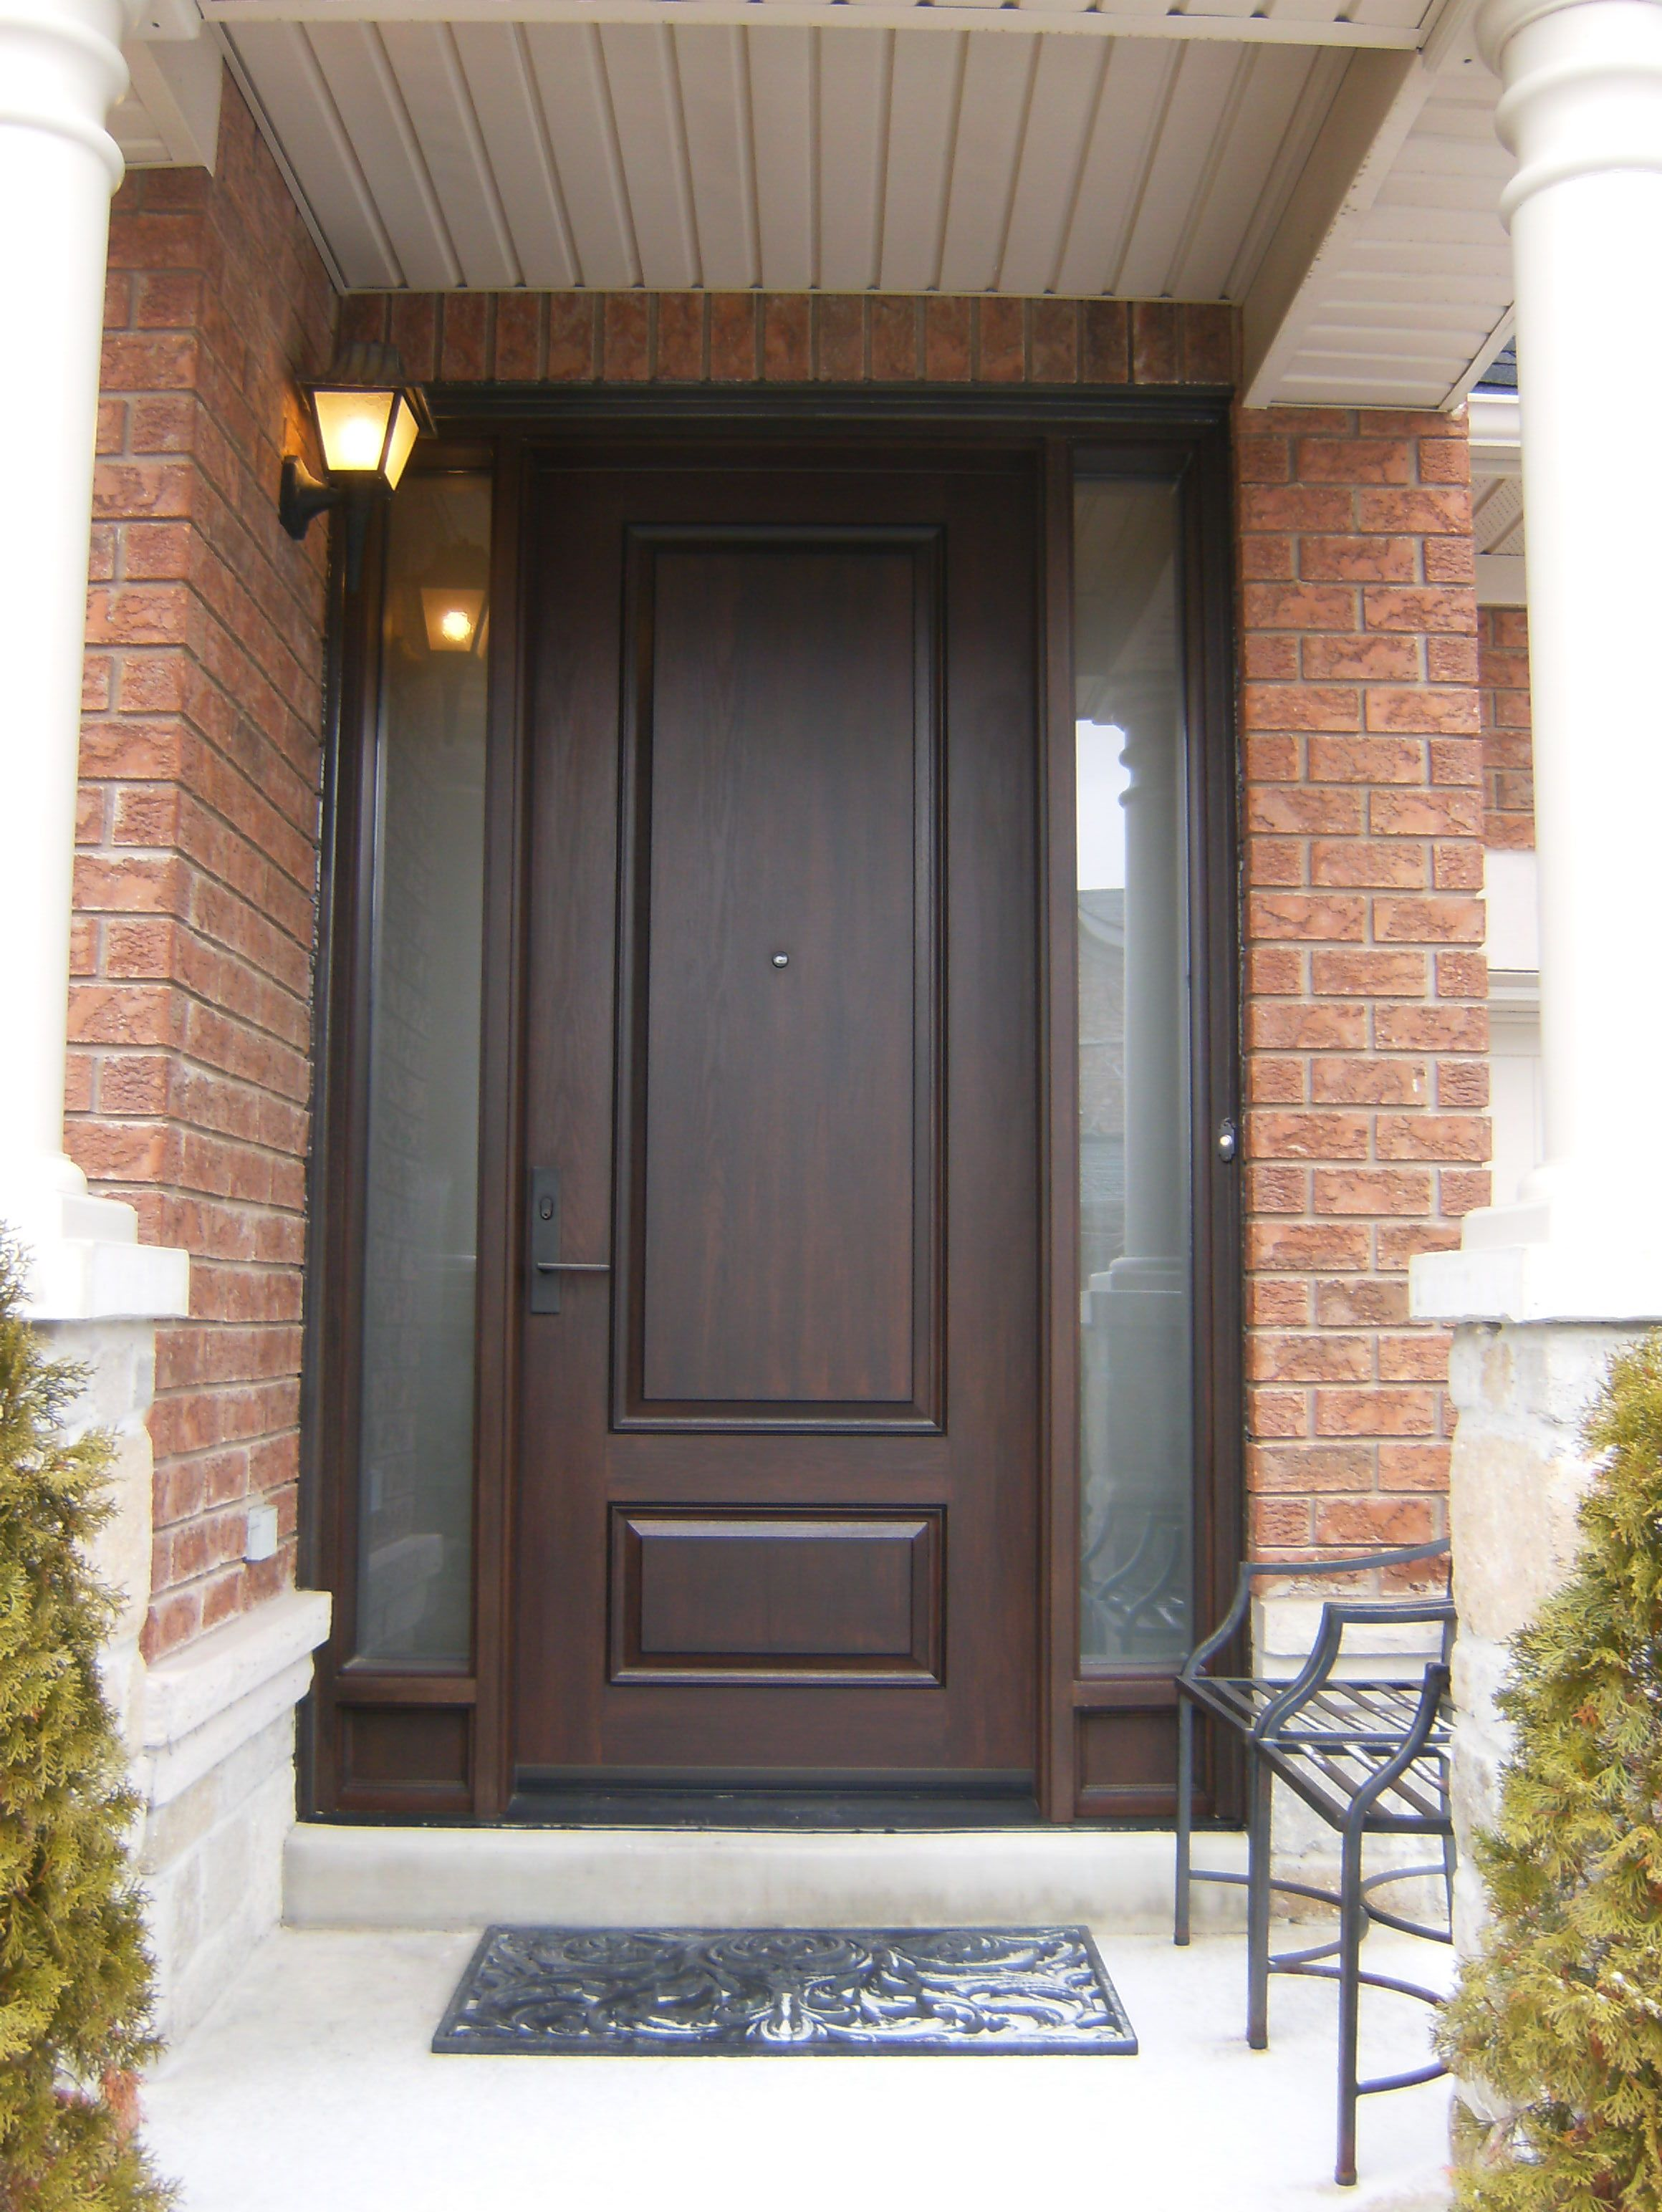 Double door and transom replaced with 8 39 fiberglass door for Fiberglass entry doors with sidelights